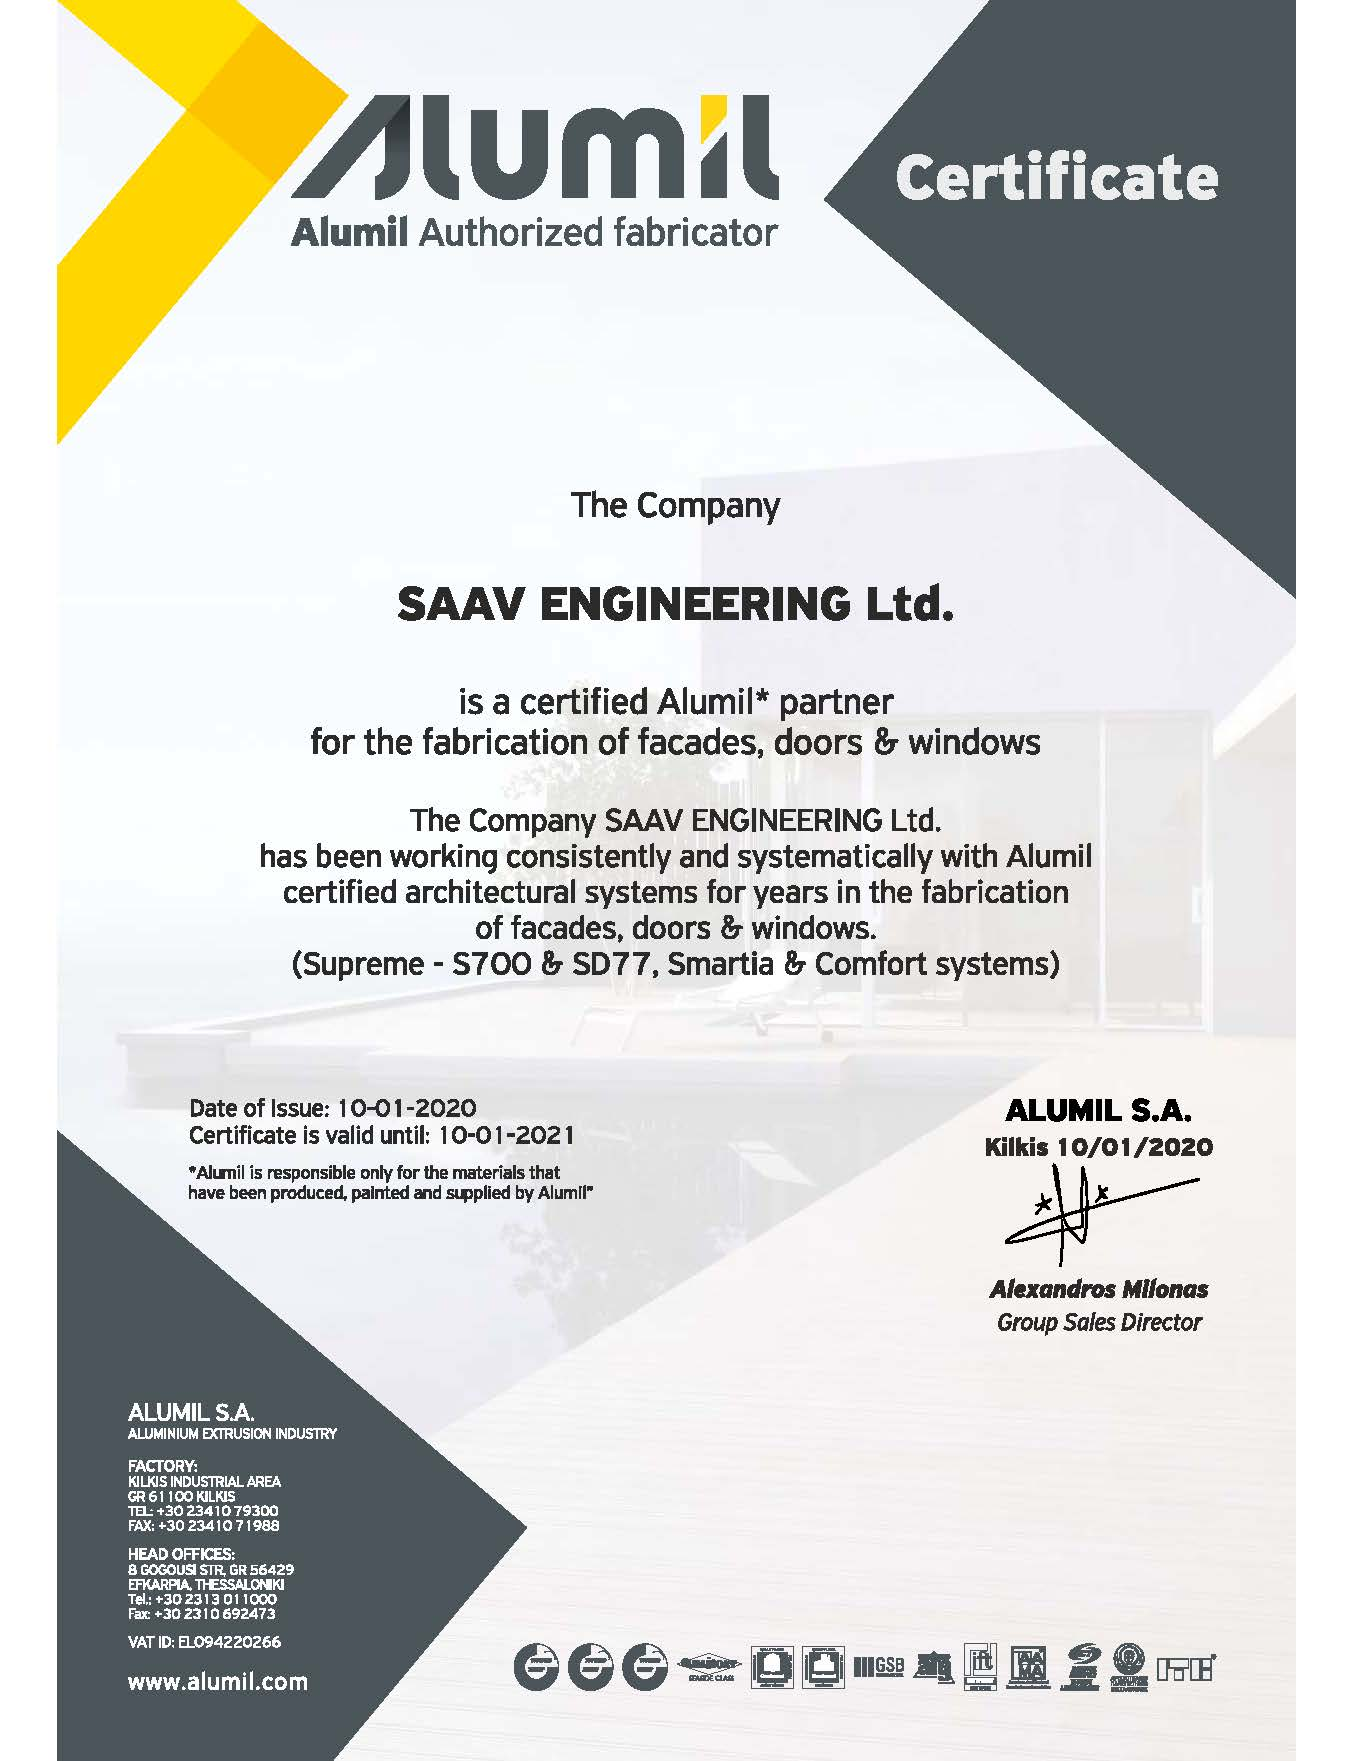 saav-engineering-supreme-certificate